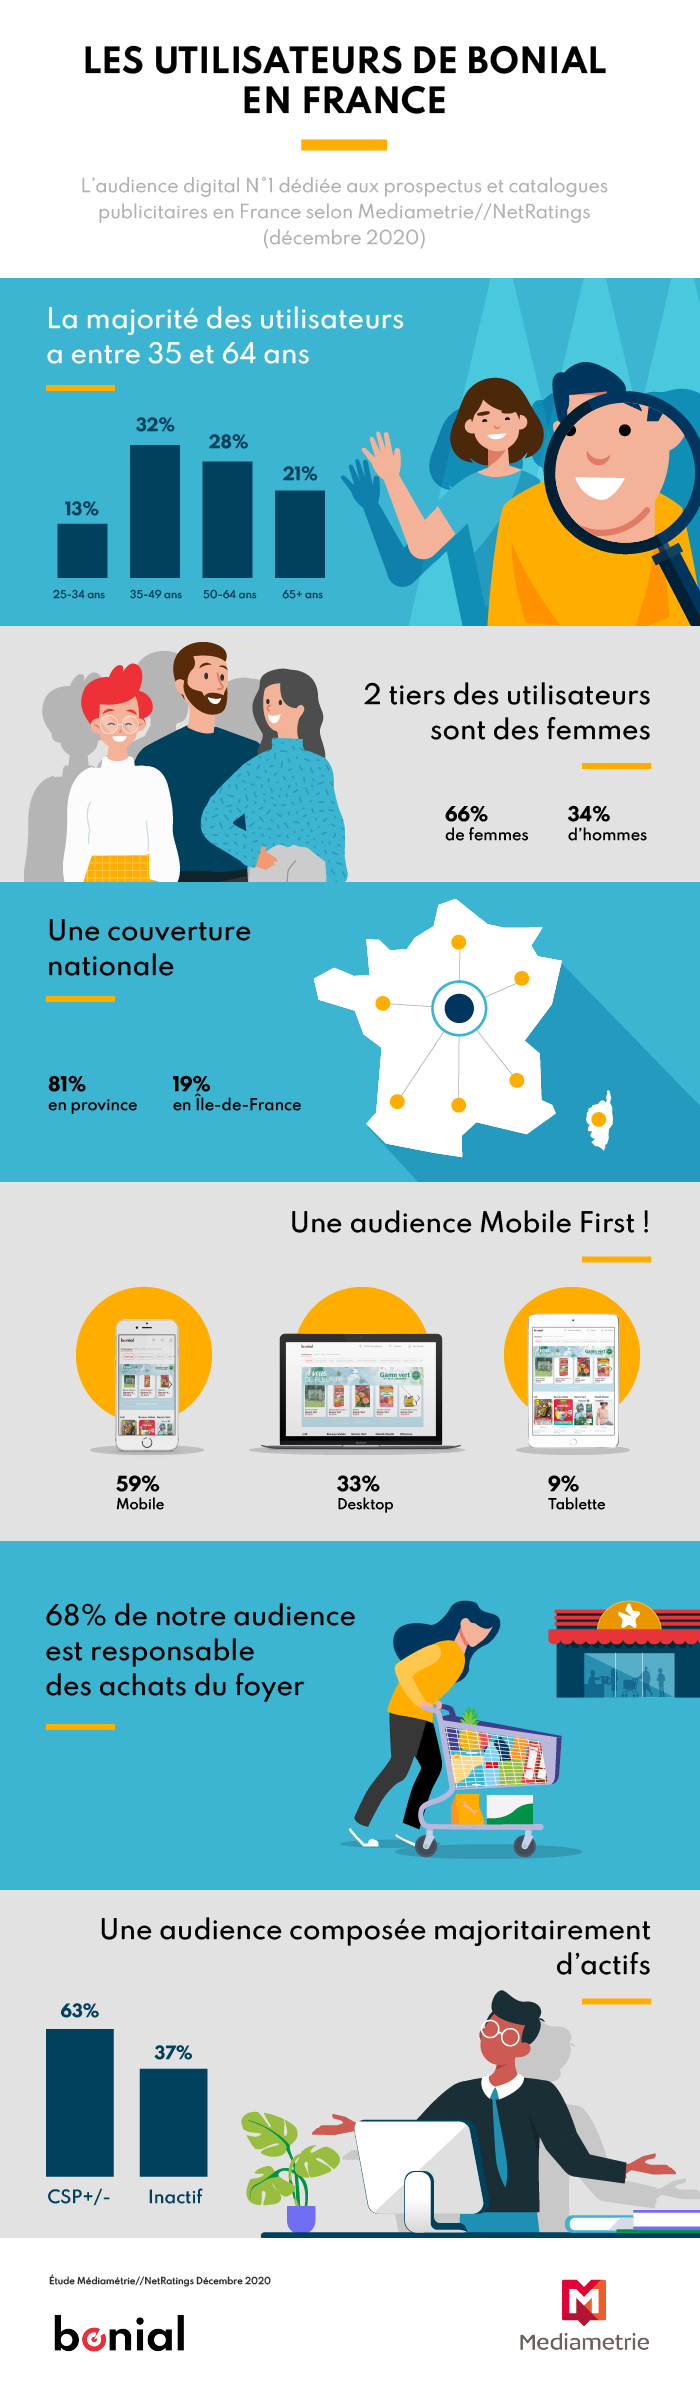 Infographie audiance bonial